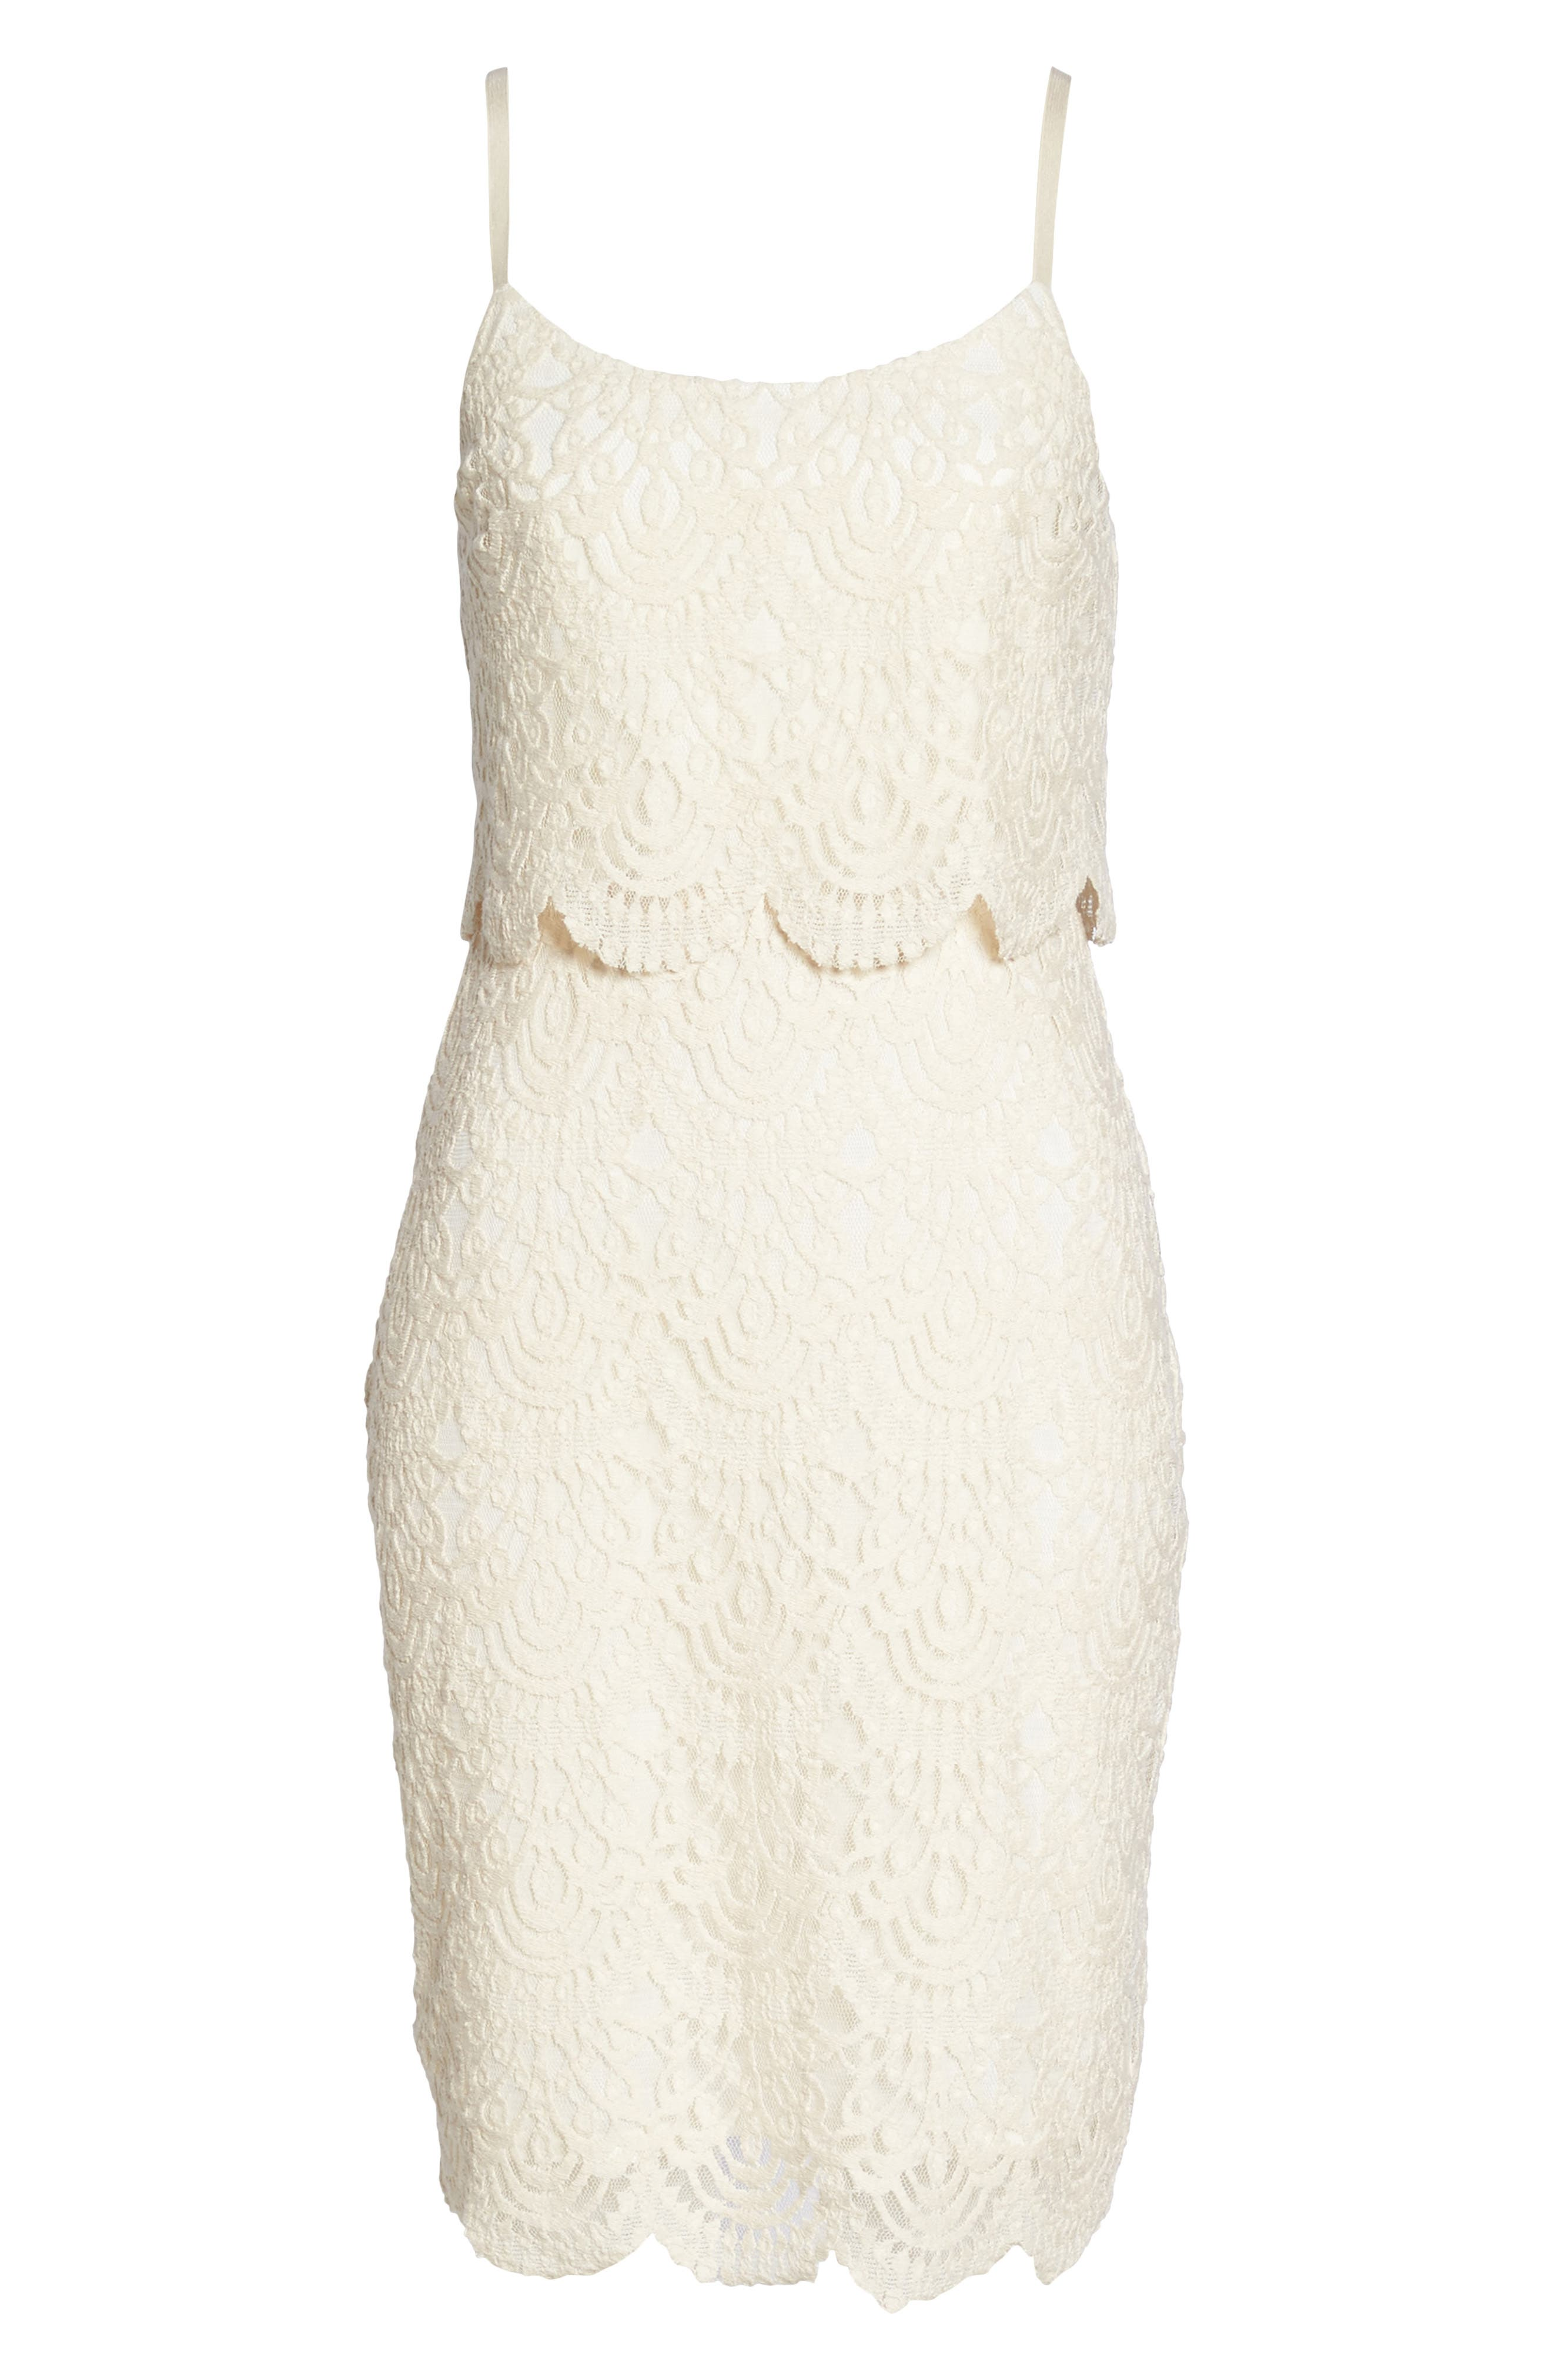 Barnsdall Afternoon Tiered Lace Dress,                             Alternate thumbnail 6, color,                             900